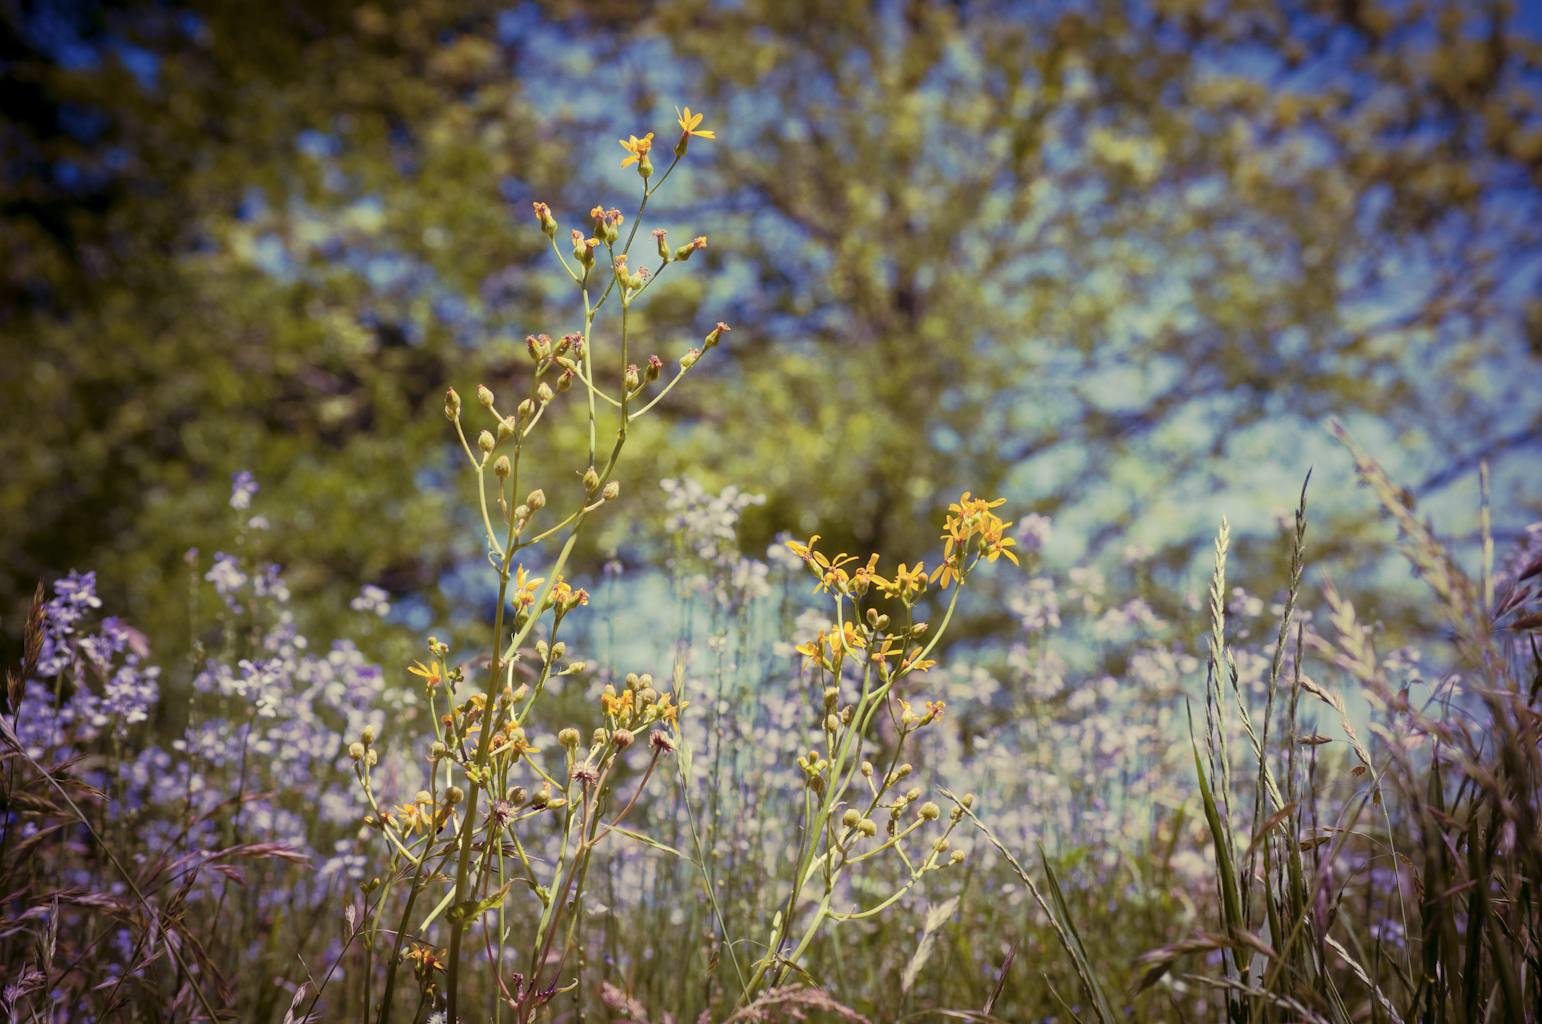 The field flowers were worth the allergies that day :)